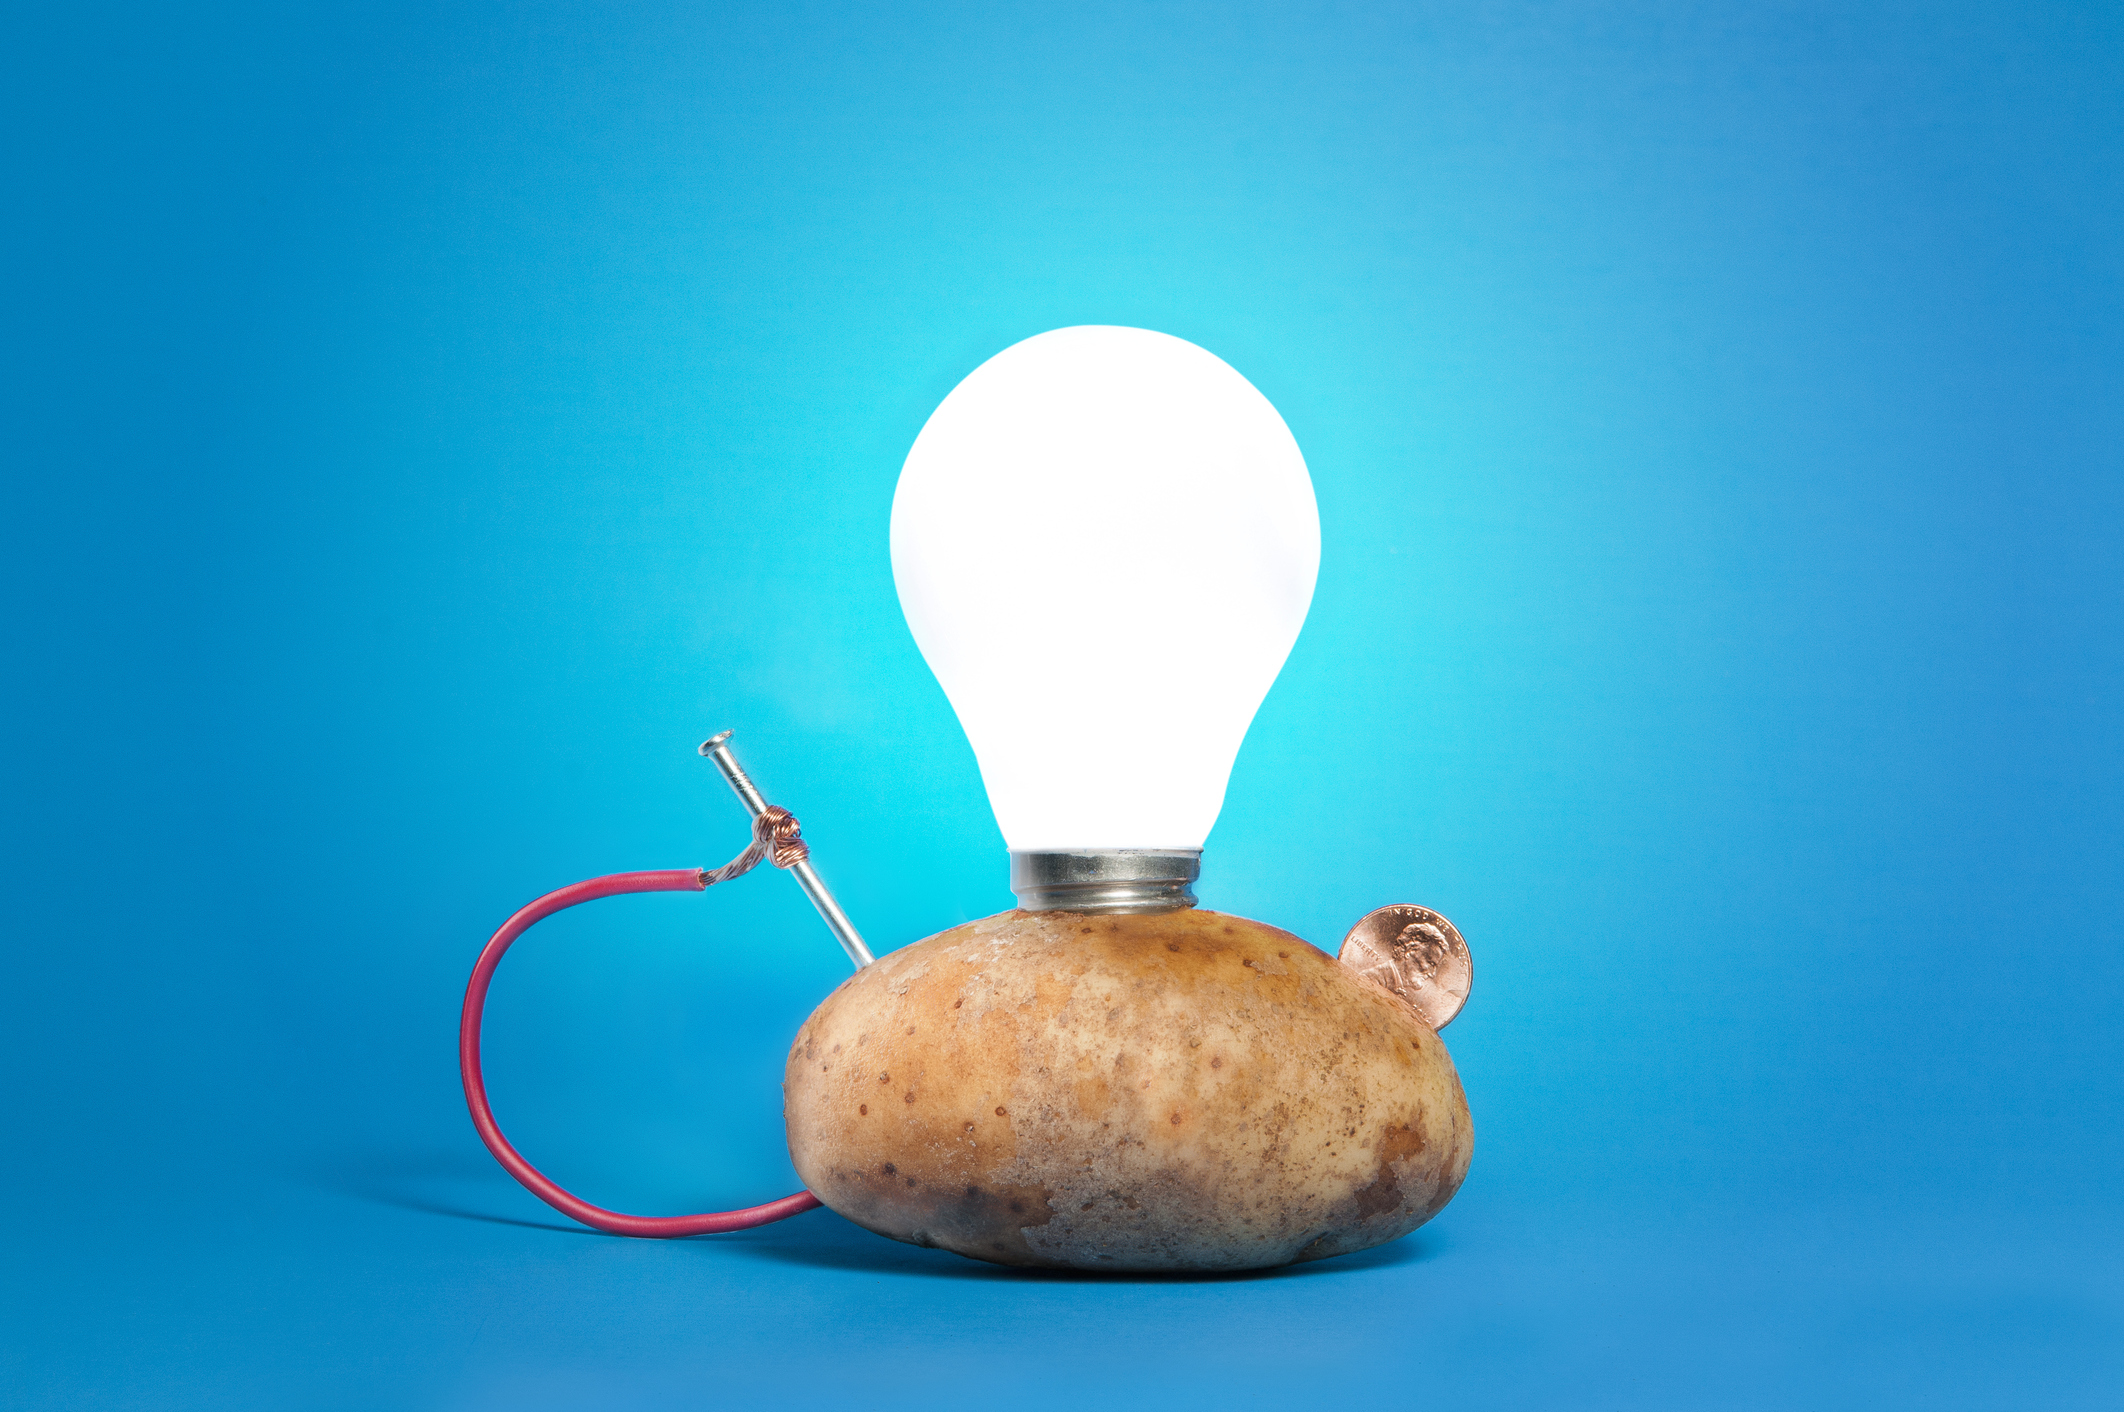 Diy potato battery led light up experiment for kids!! Easy step by.